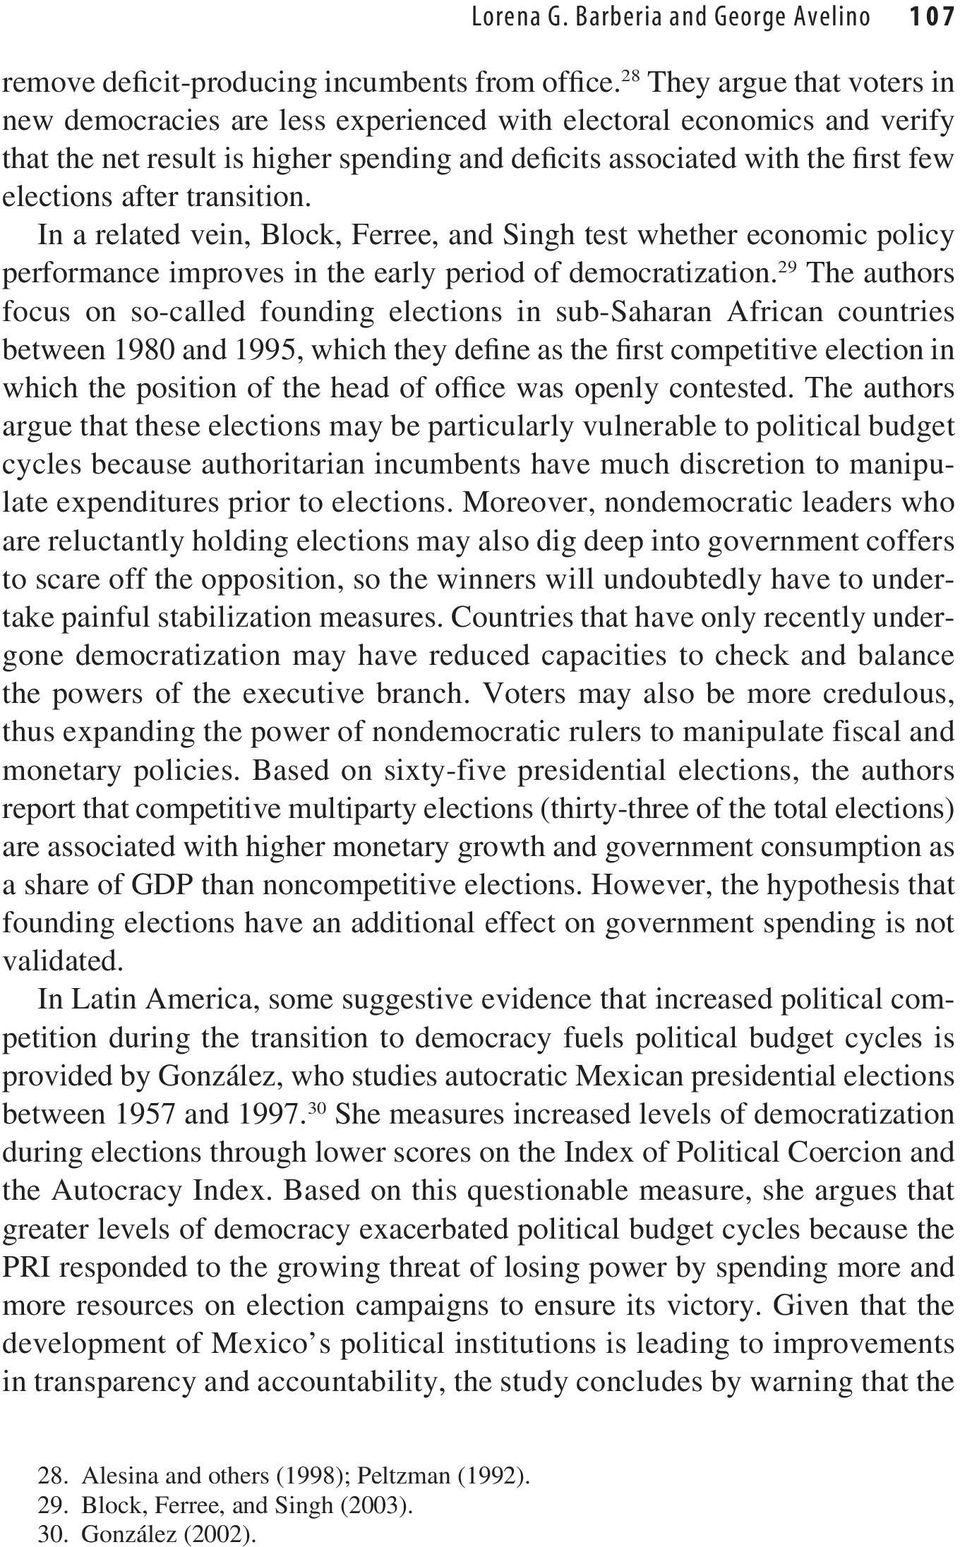 transition. In a related vein, Block, Ferree, and Singh test whether economic policy performance improves in the early period of democratization.